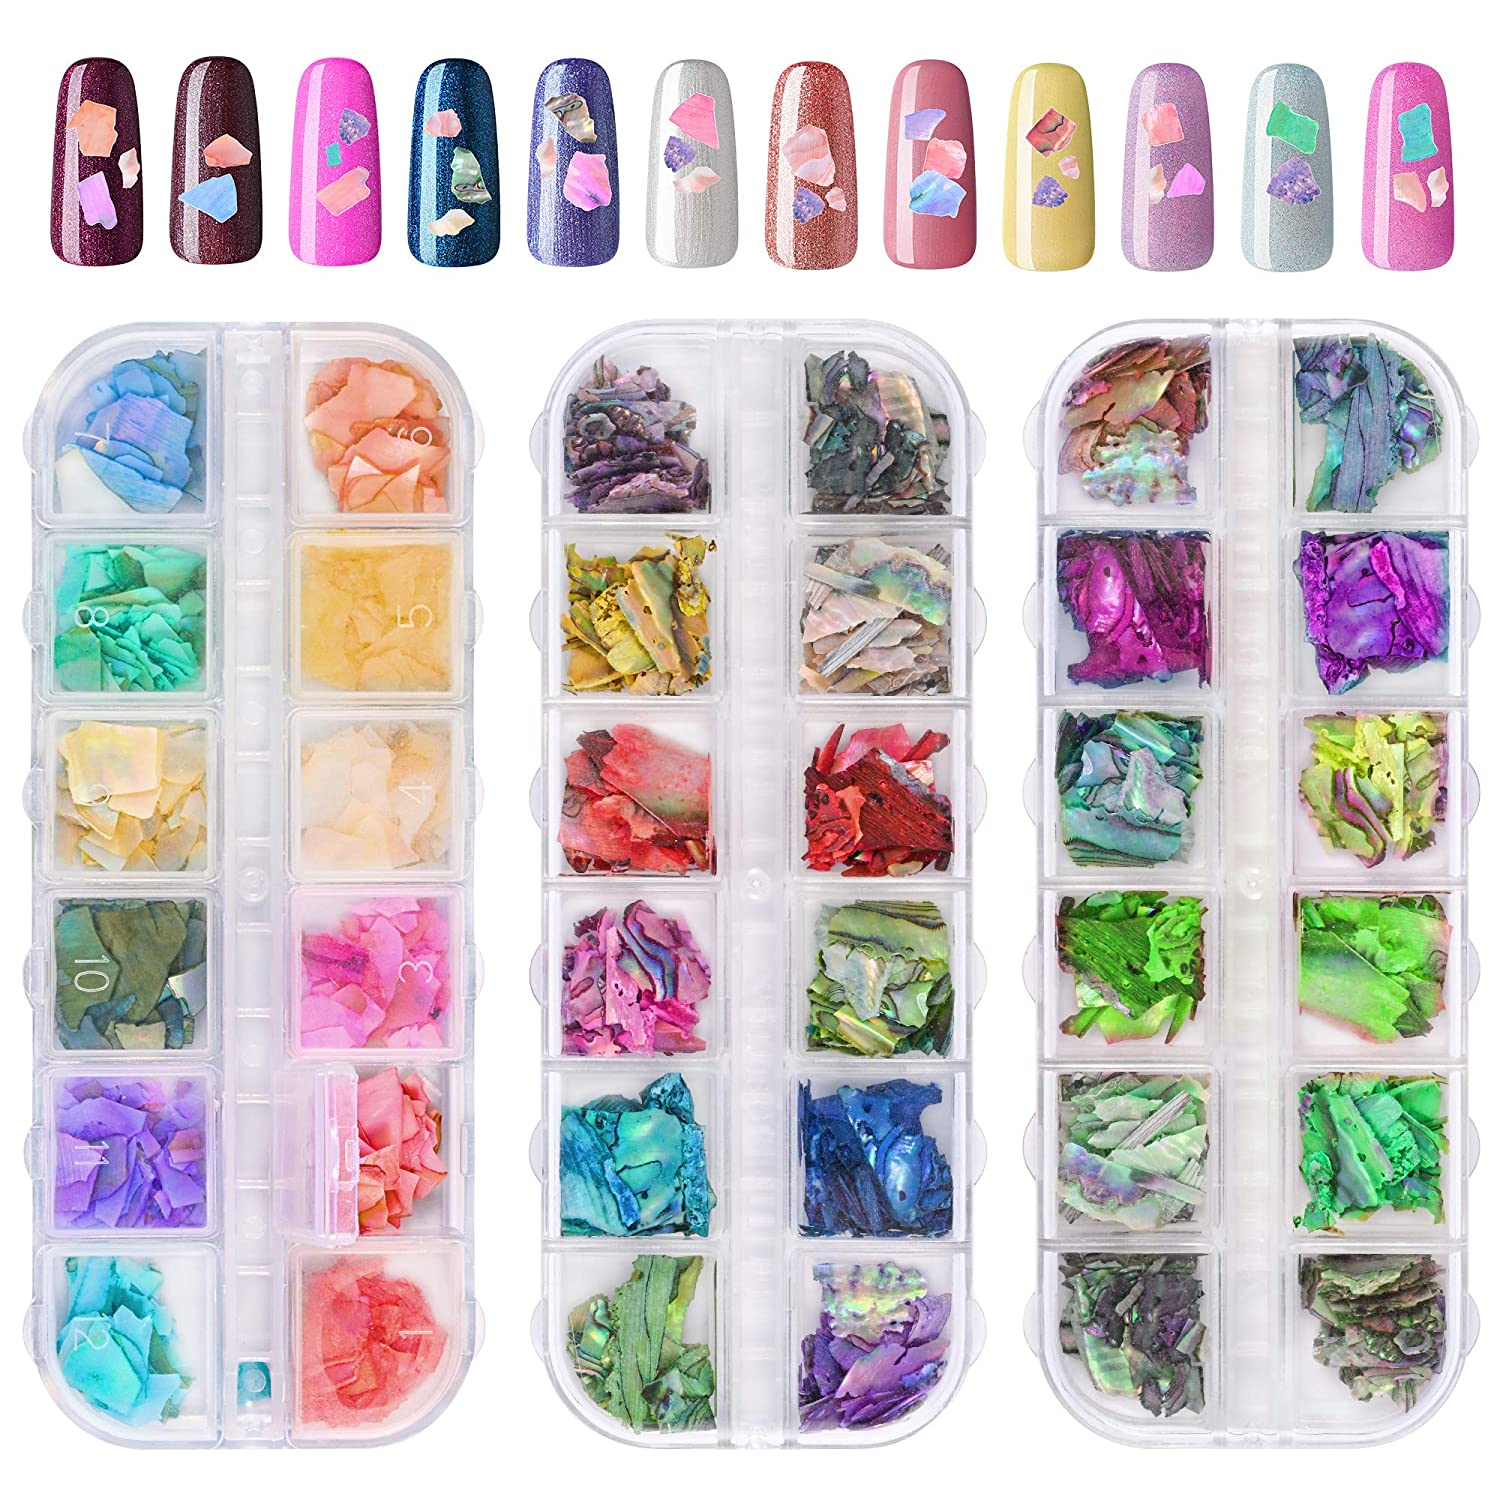 Limited Special Price ONNPNN 3 Boxes Nail Sale price Art Iridescen Glitter Seashell Shell Crushed